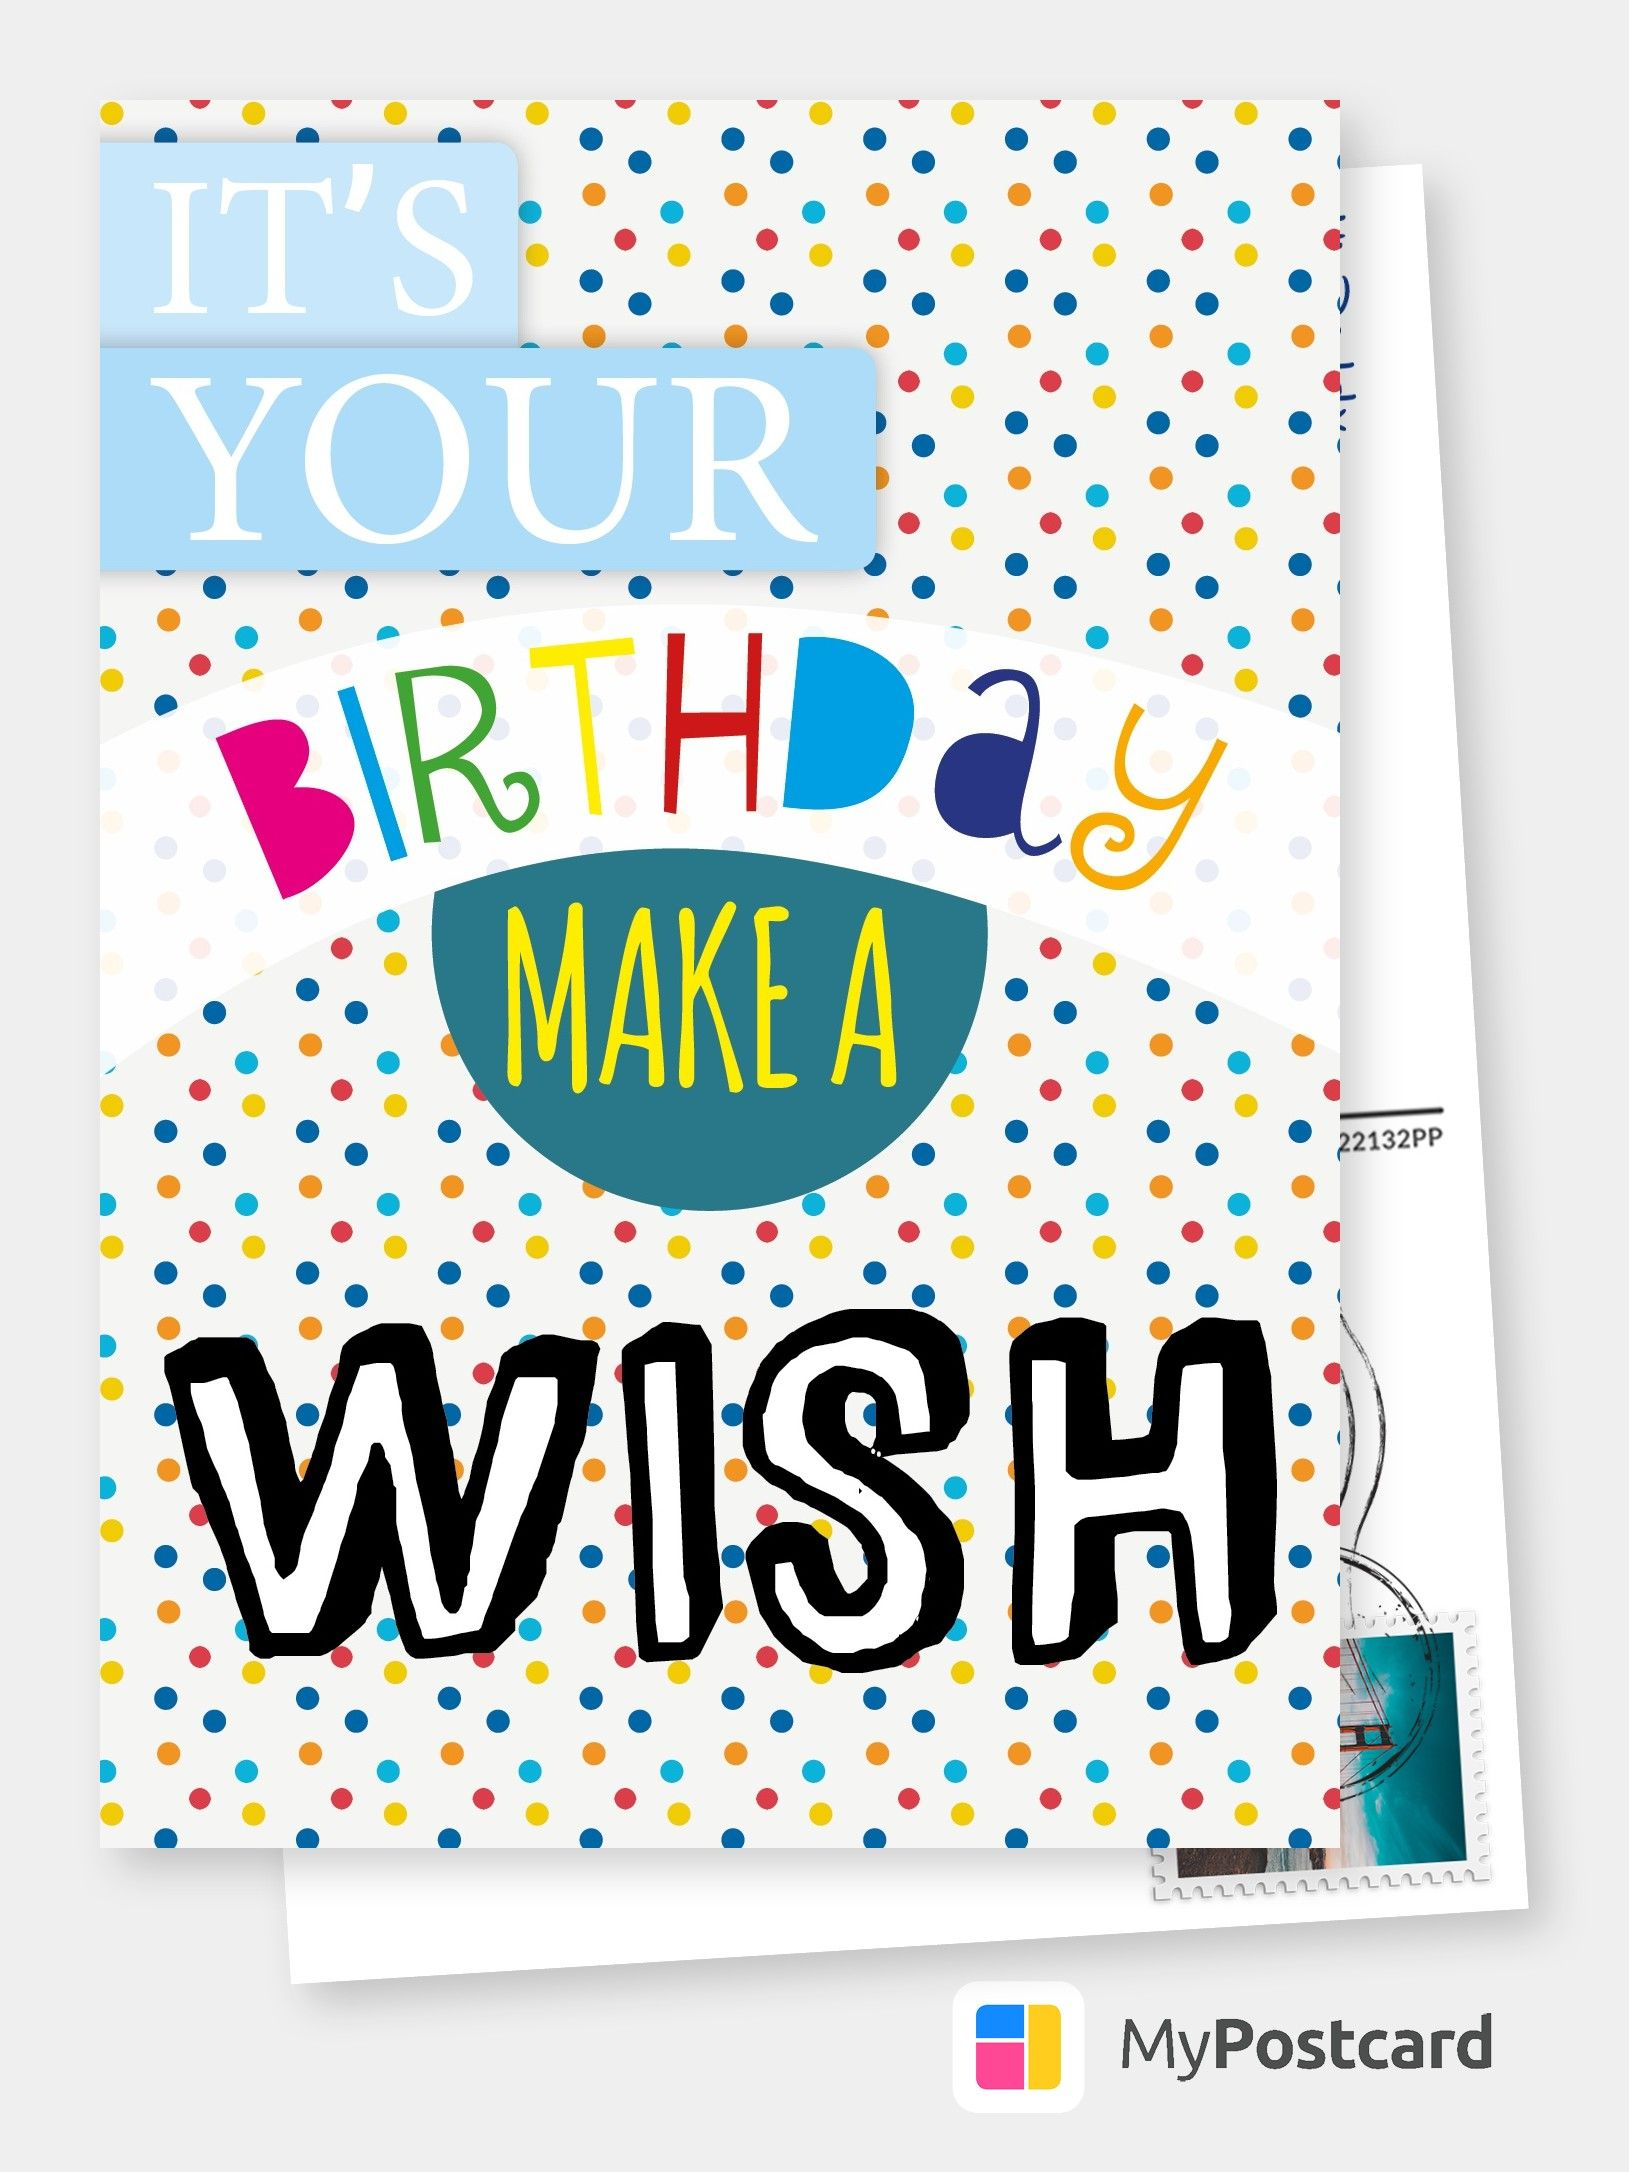 Birthday cards ideas free shipping printed mailed